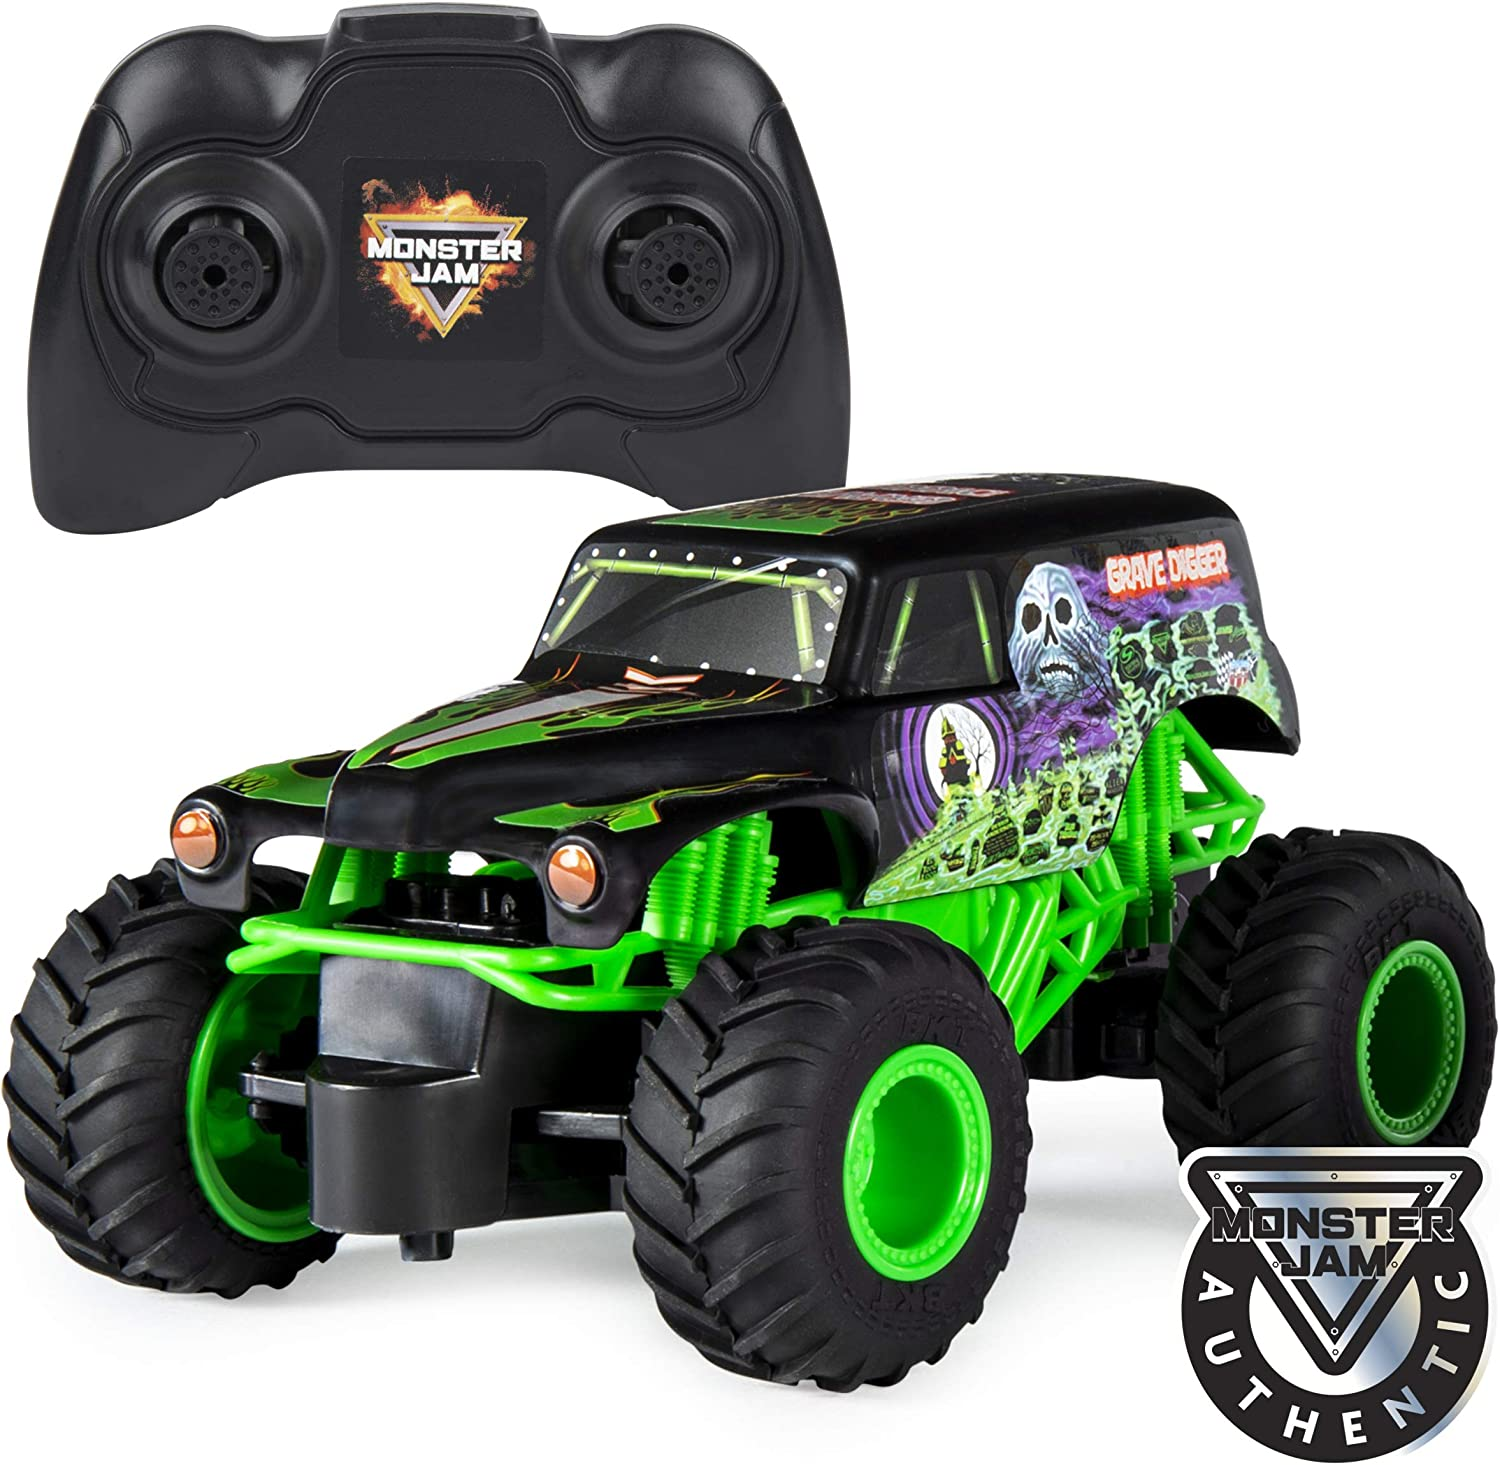 Amazon Com Monster Jam Official Grave Digger Remote Control Monster Truck 1 24 Scale 2 4 Ghz For Ages 4 And Up Toys Games